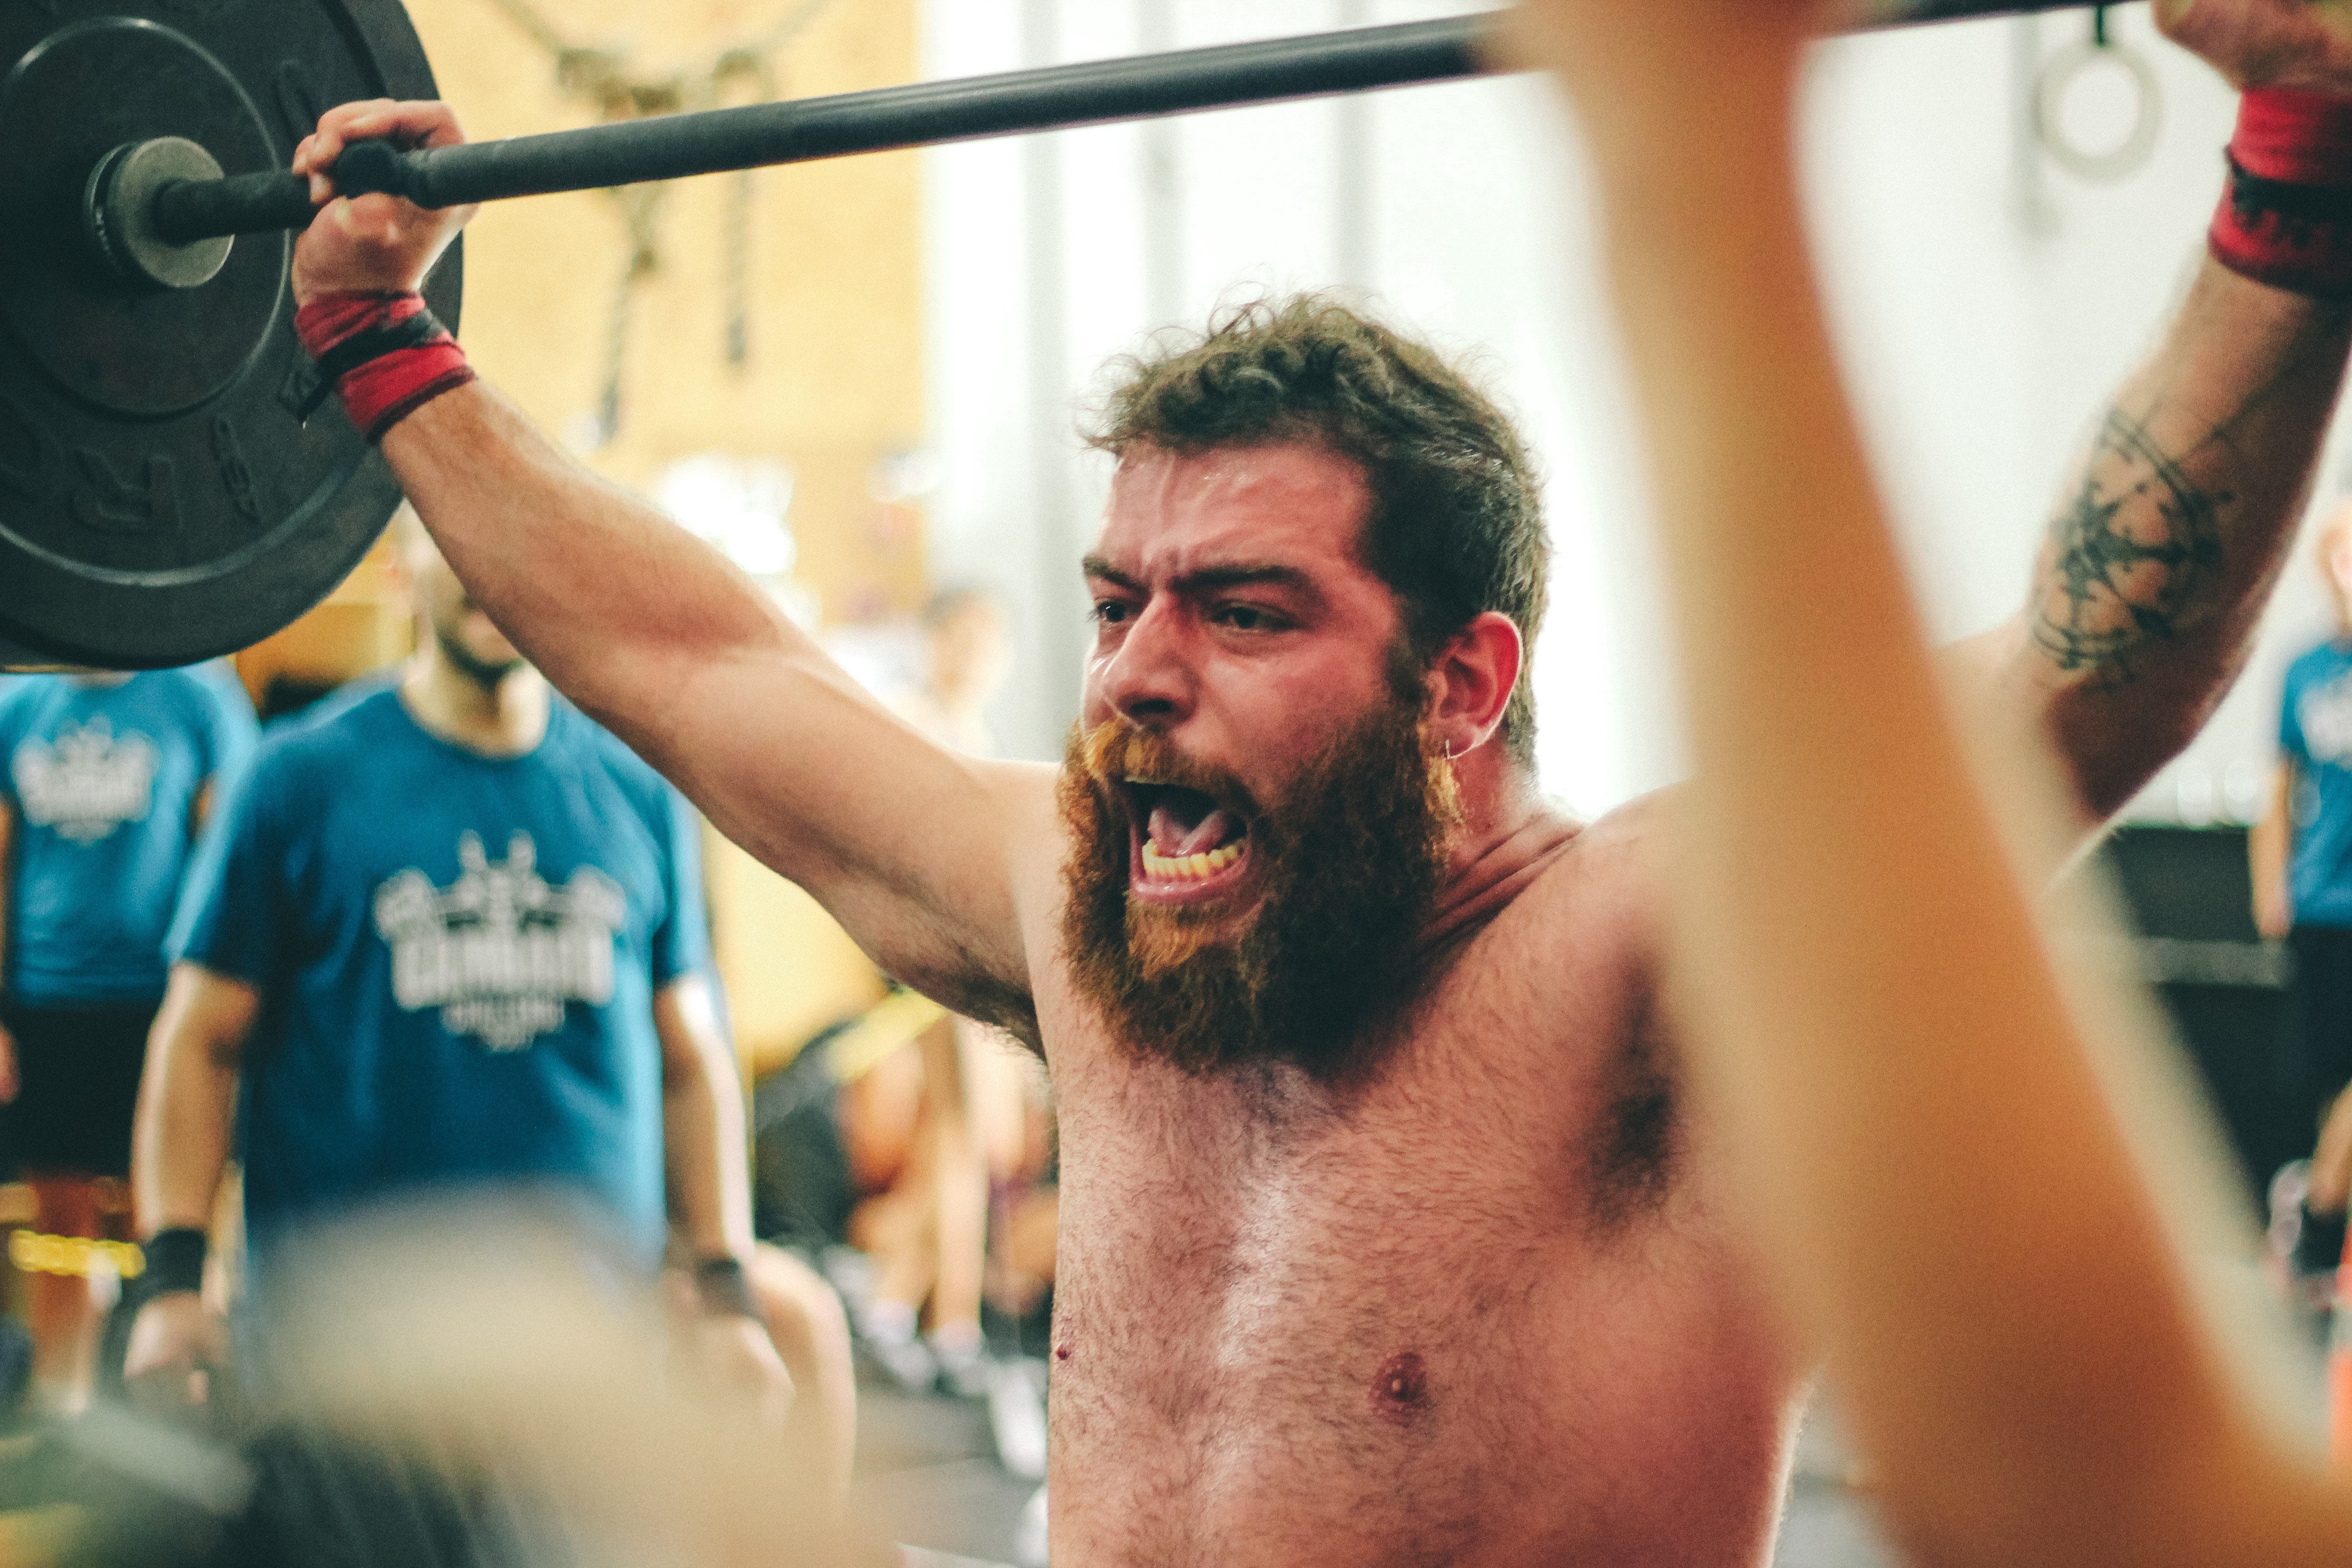 Man Carrying Black Barbell, Adult, Gym, Weightlifting, Training, HQ Photo